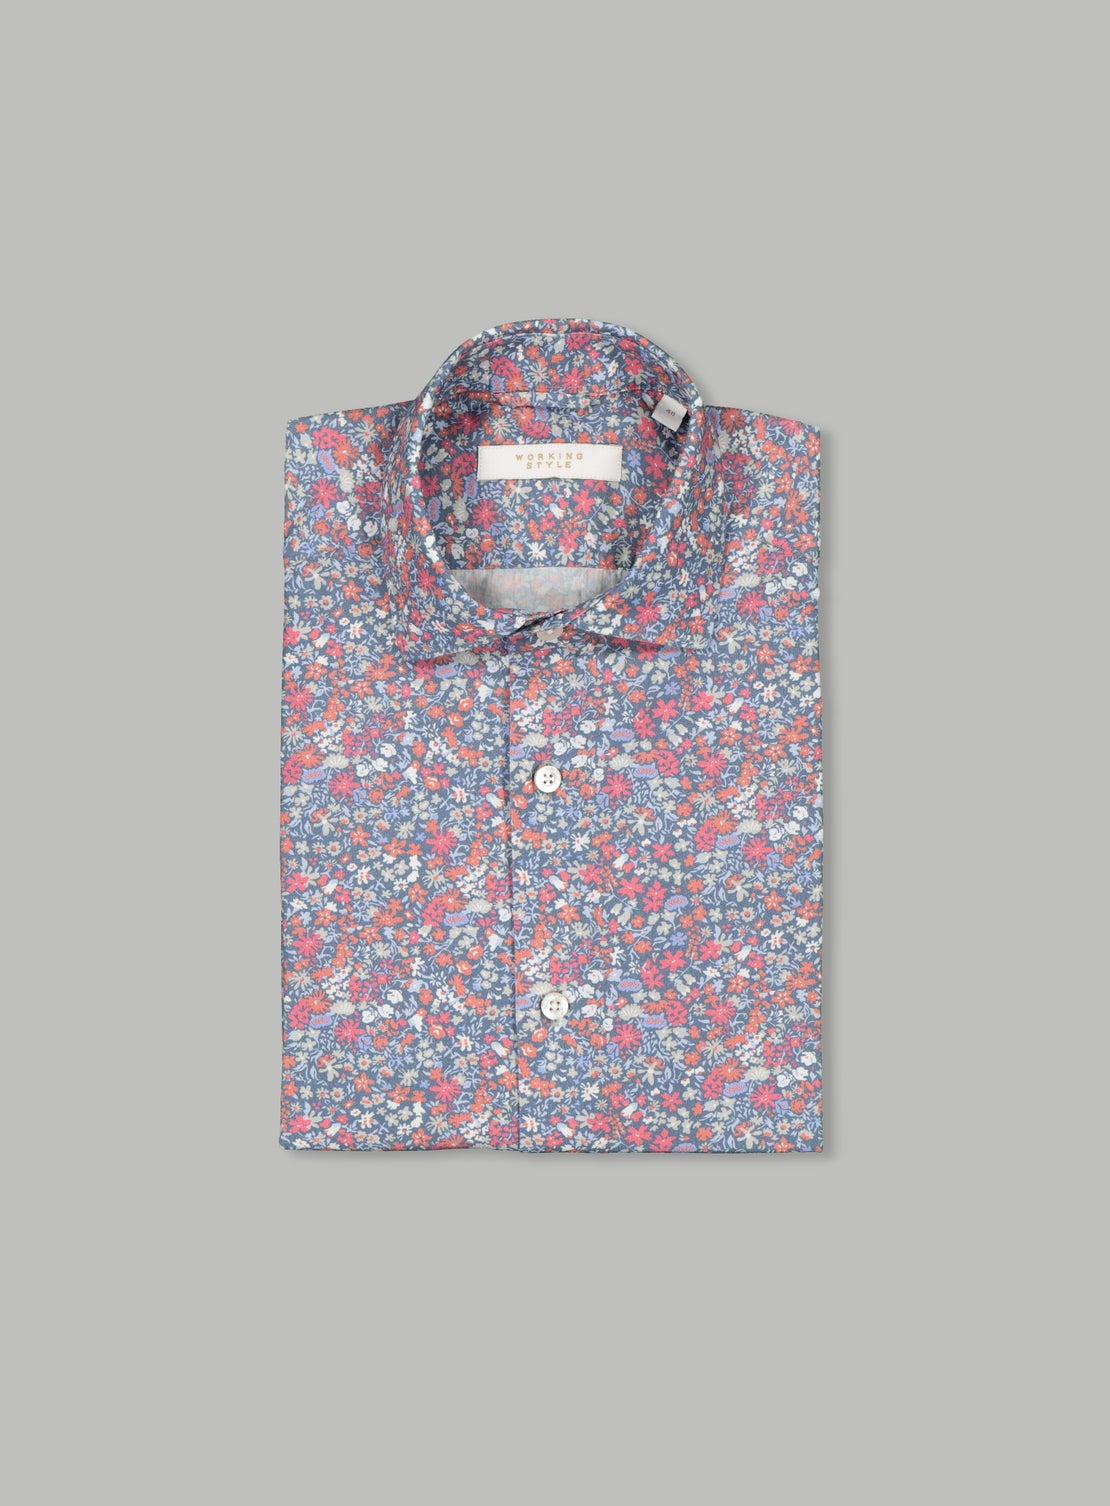 Floral Collage Shirt